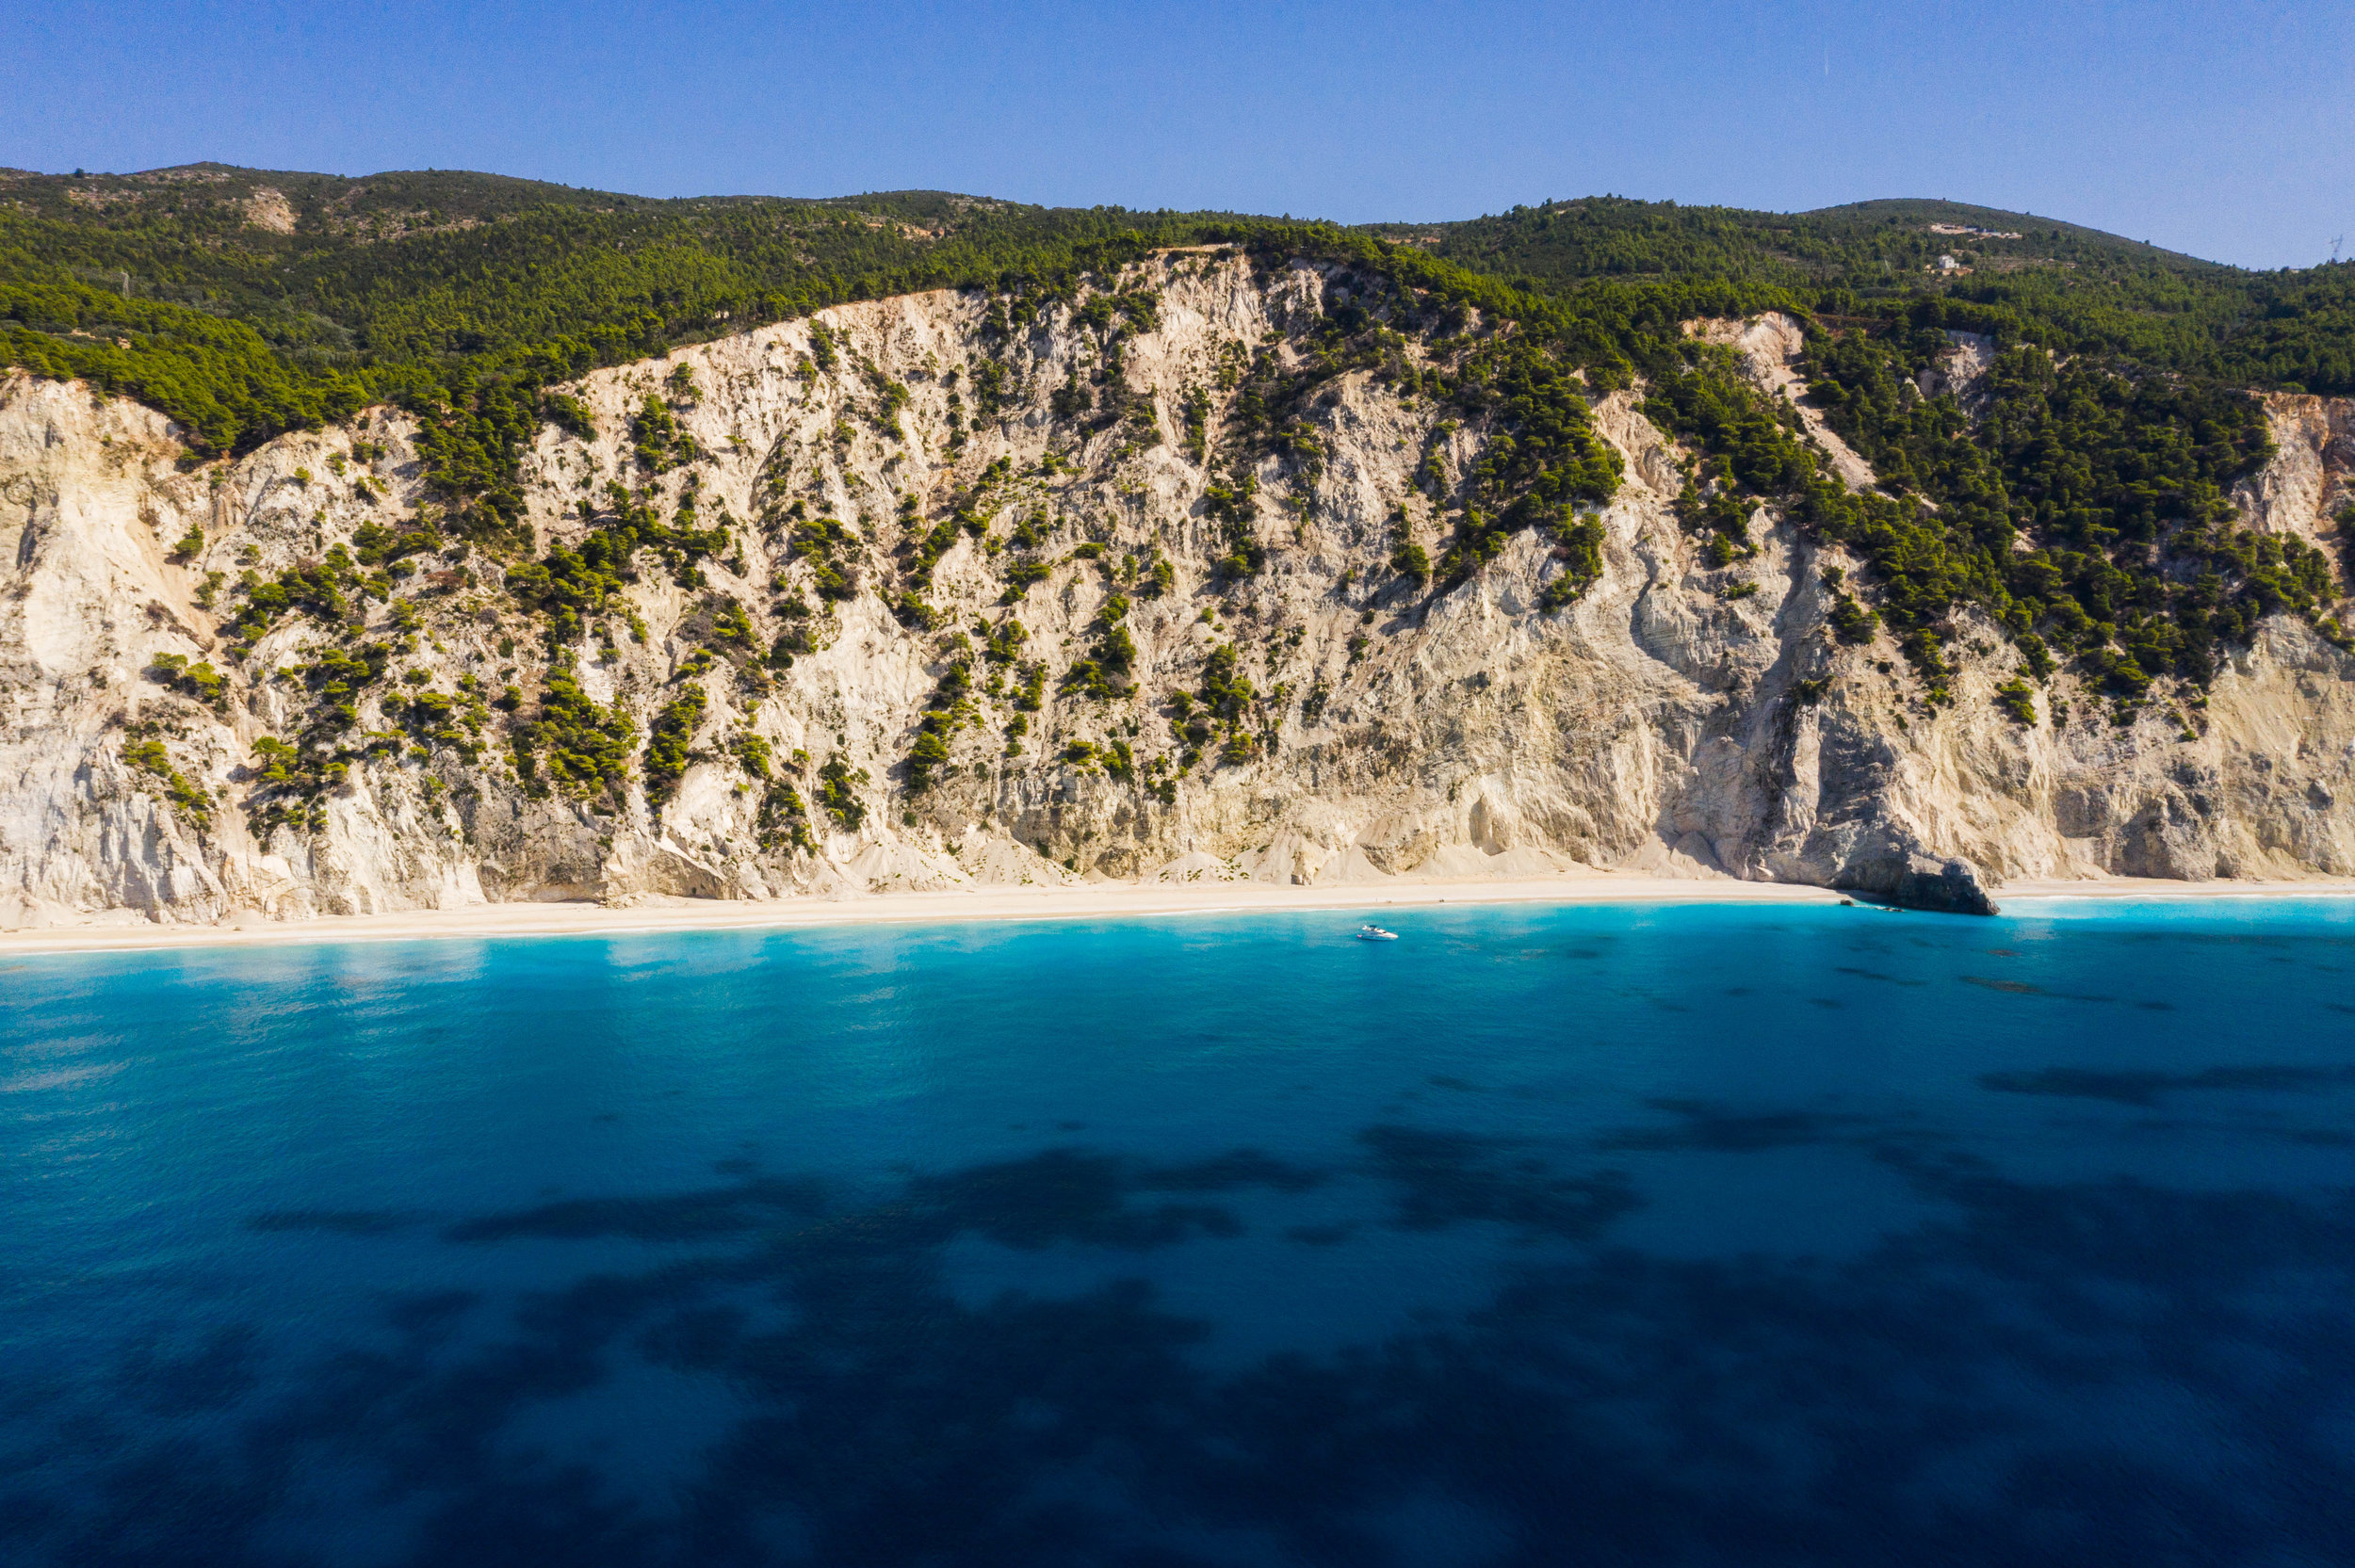 TRIP DETAILS - Departure : Lefkada or NidriReturn : Lefkada or NidriDeparture Time : 08:00 amArrival Time : 06:00 pmDuration : 10 hoursMax Capacity : 10 passengersPRICE: from €2100